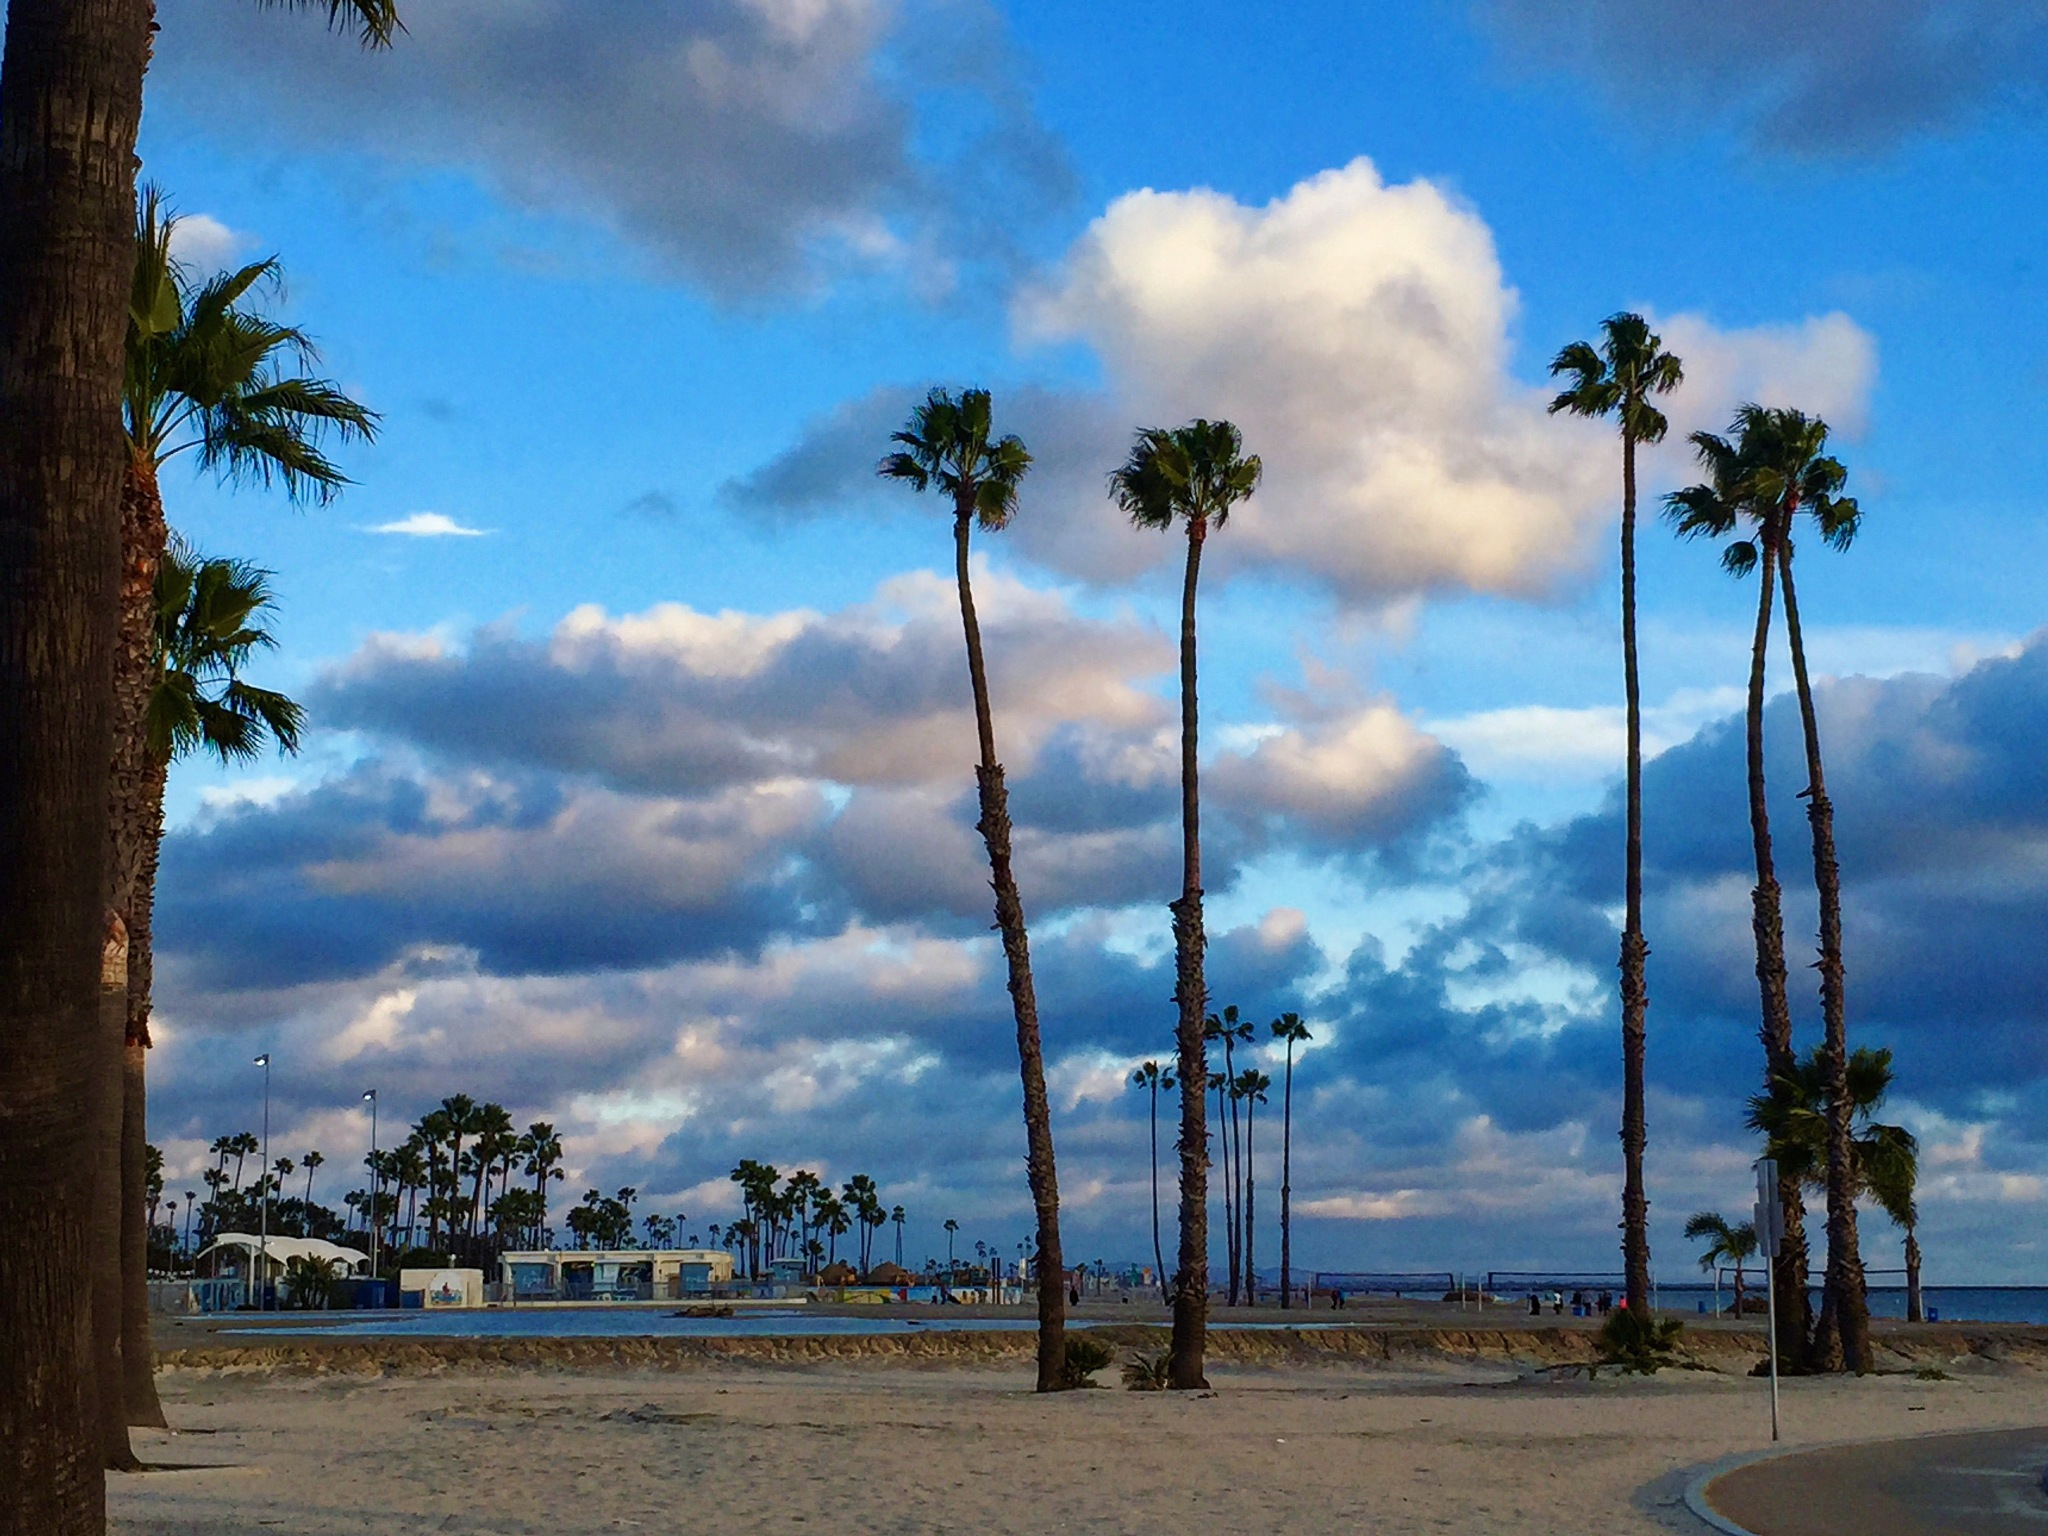 Clouds and palmtrees by maryann.mishko